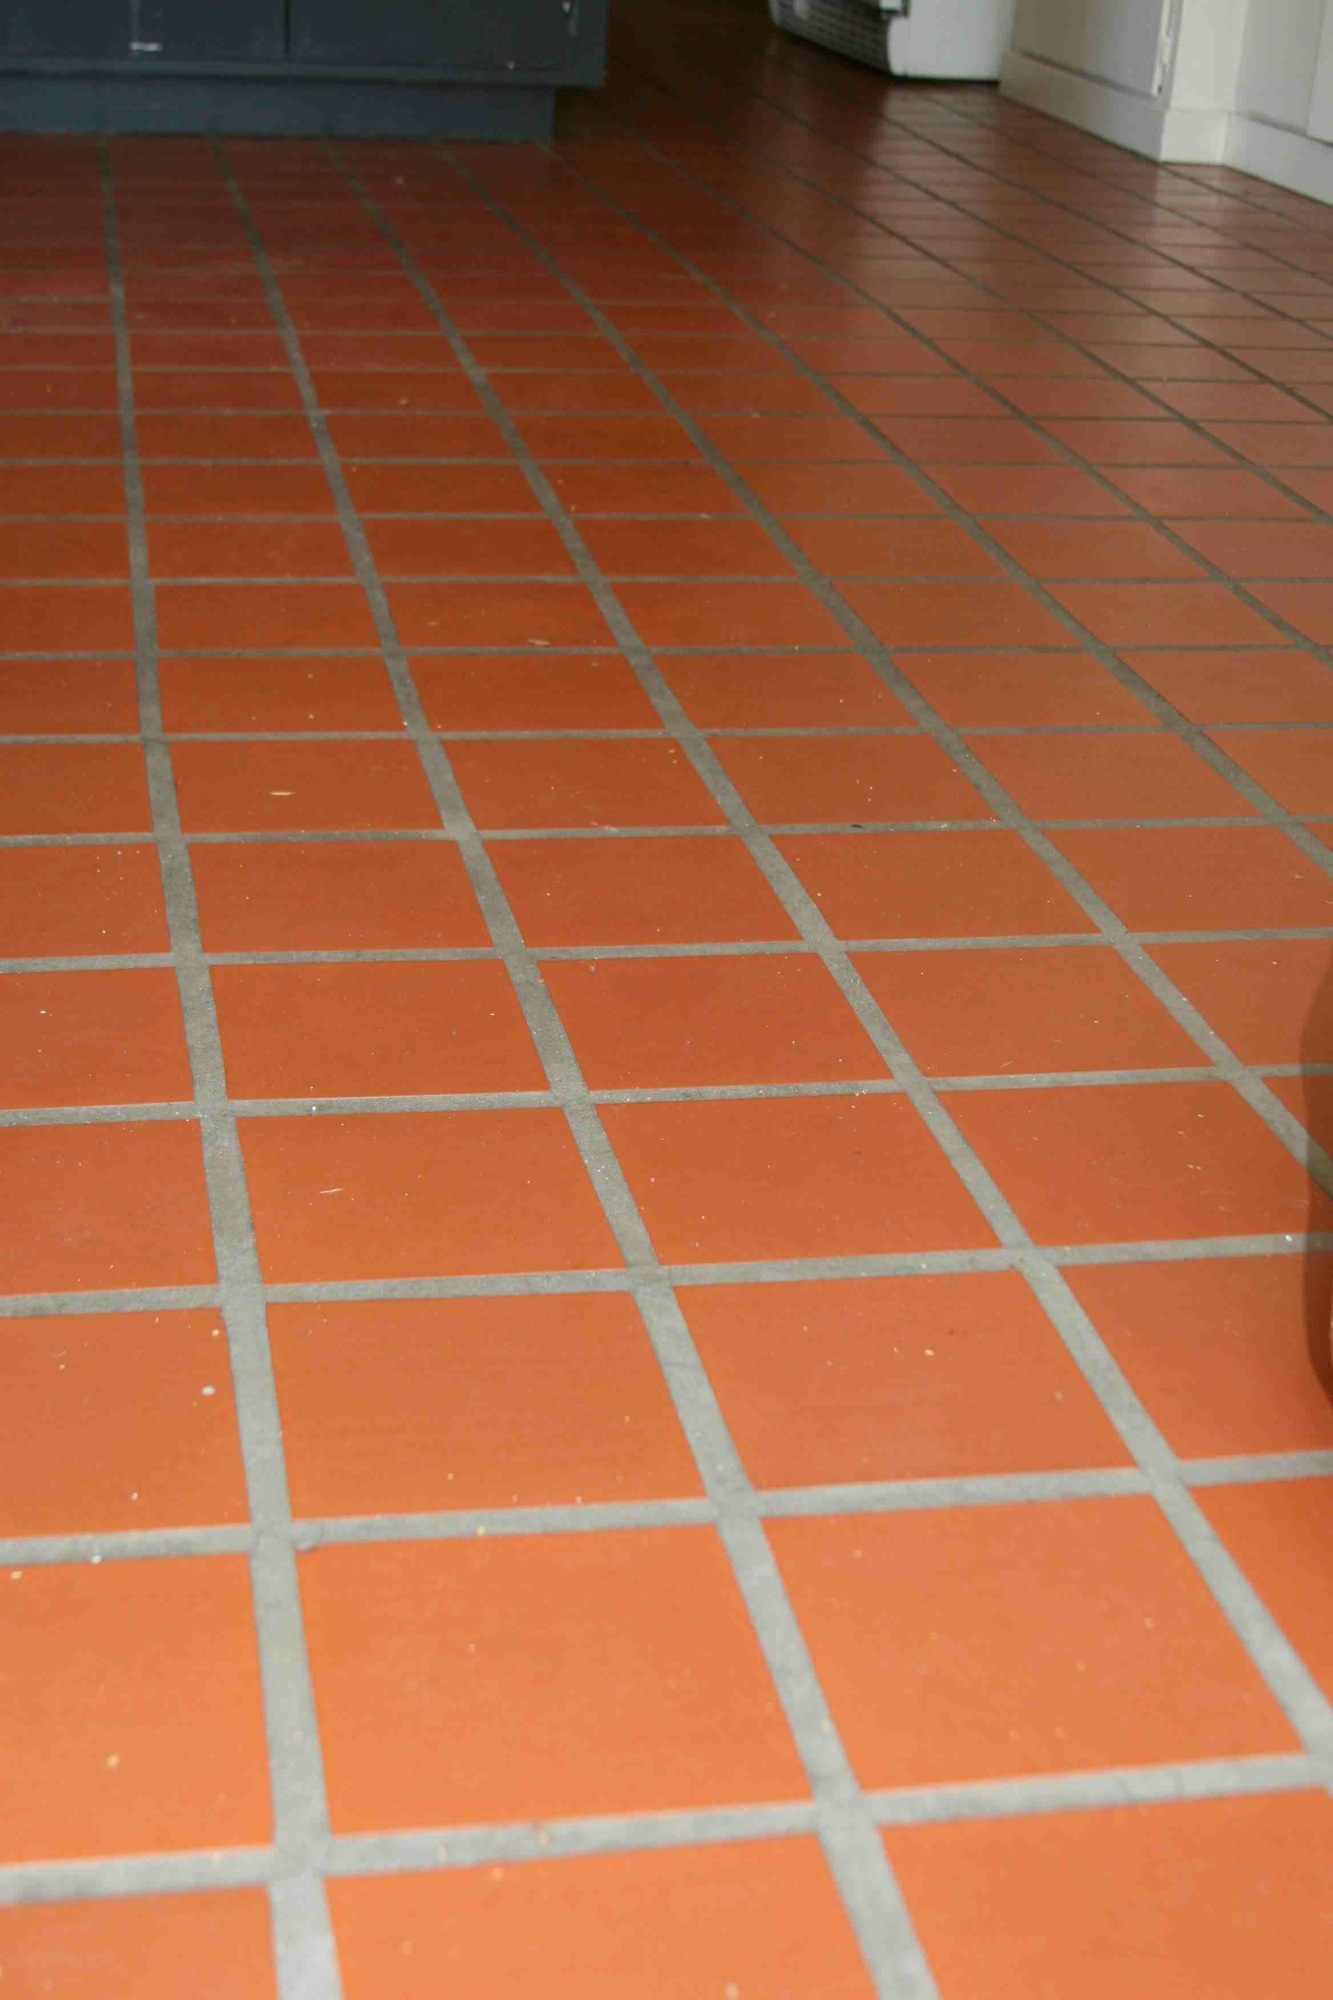 Kitchens Floor Tiles Yay Cork Flooring Going Over Bad Kitchen Tile Brand Hang